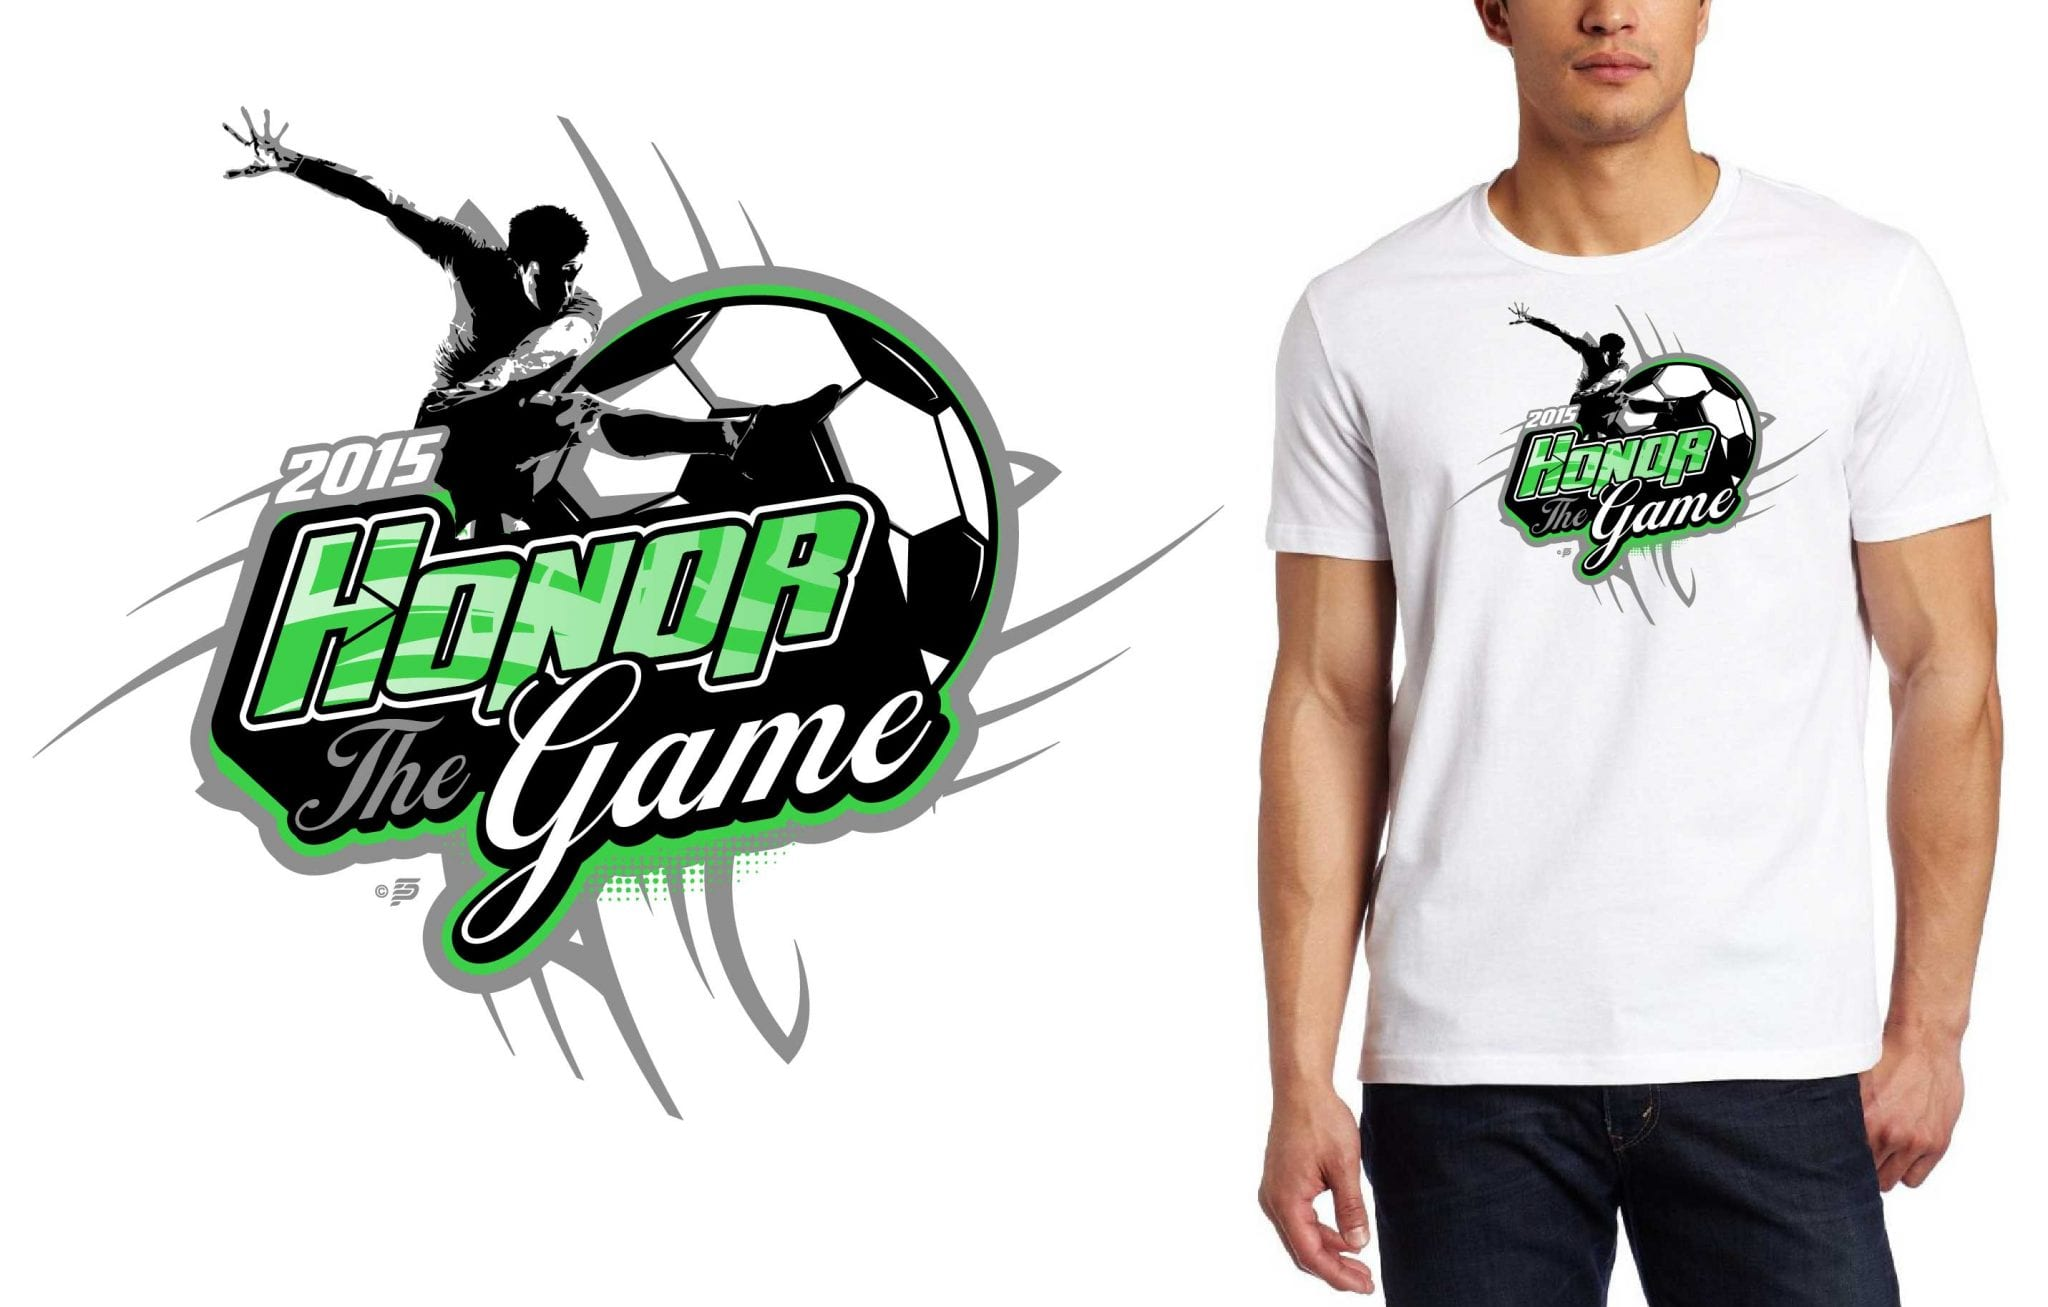 2015 honor the game soccer t shirt logo design - Soccer T Shirt Design Ideas